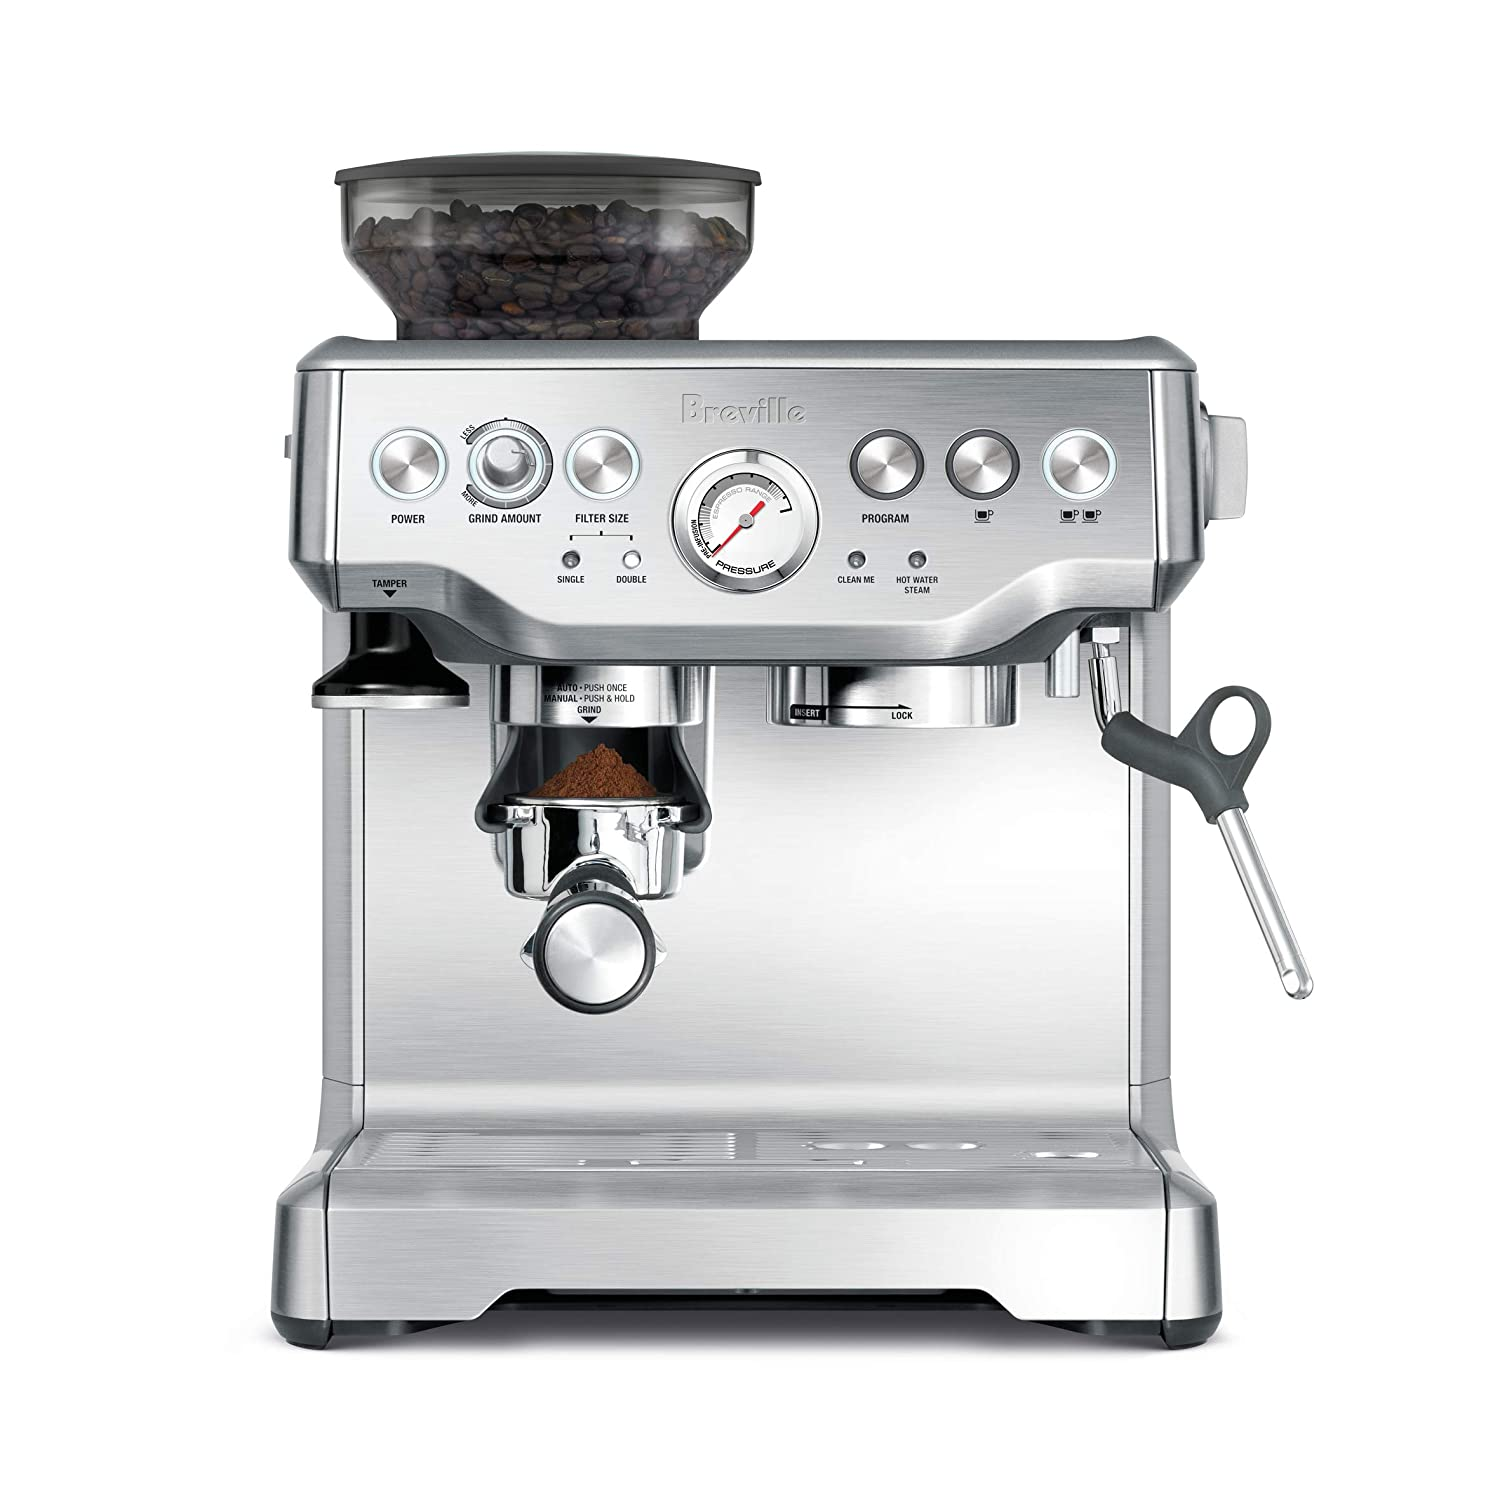 Top 10 Best Espresso Machines under $1000 (2019 Reviews & Buyer's Guide) 1